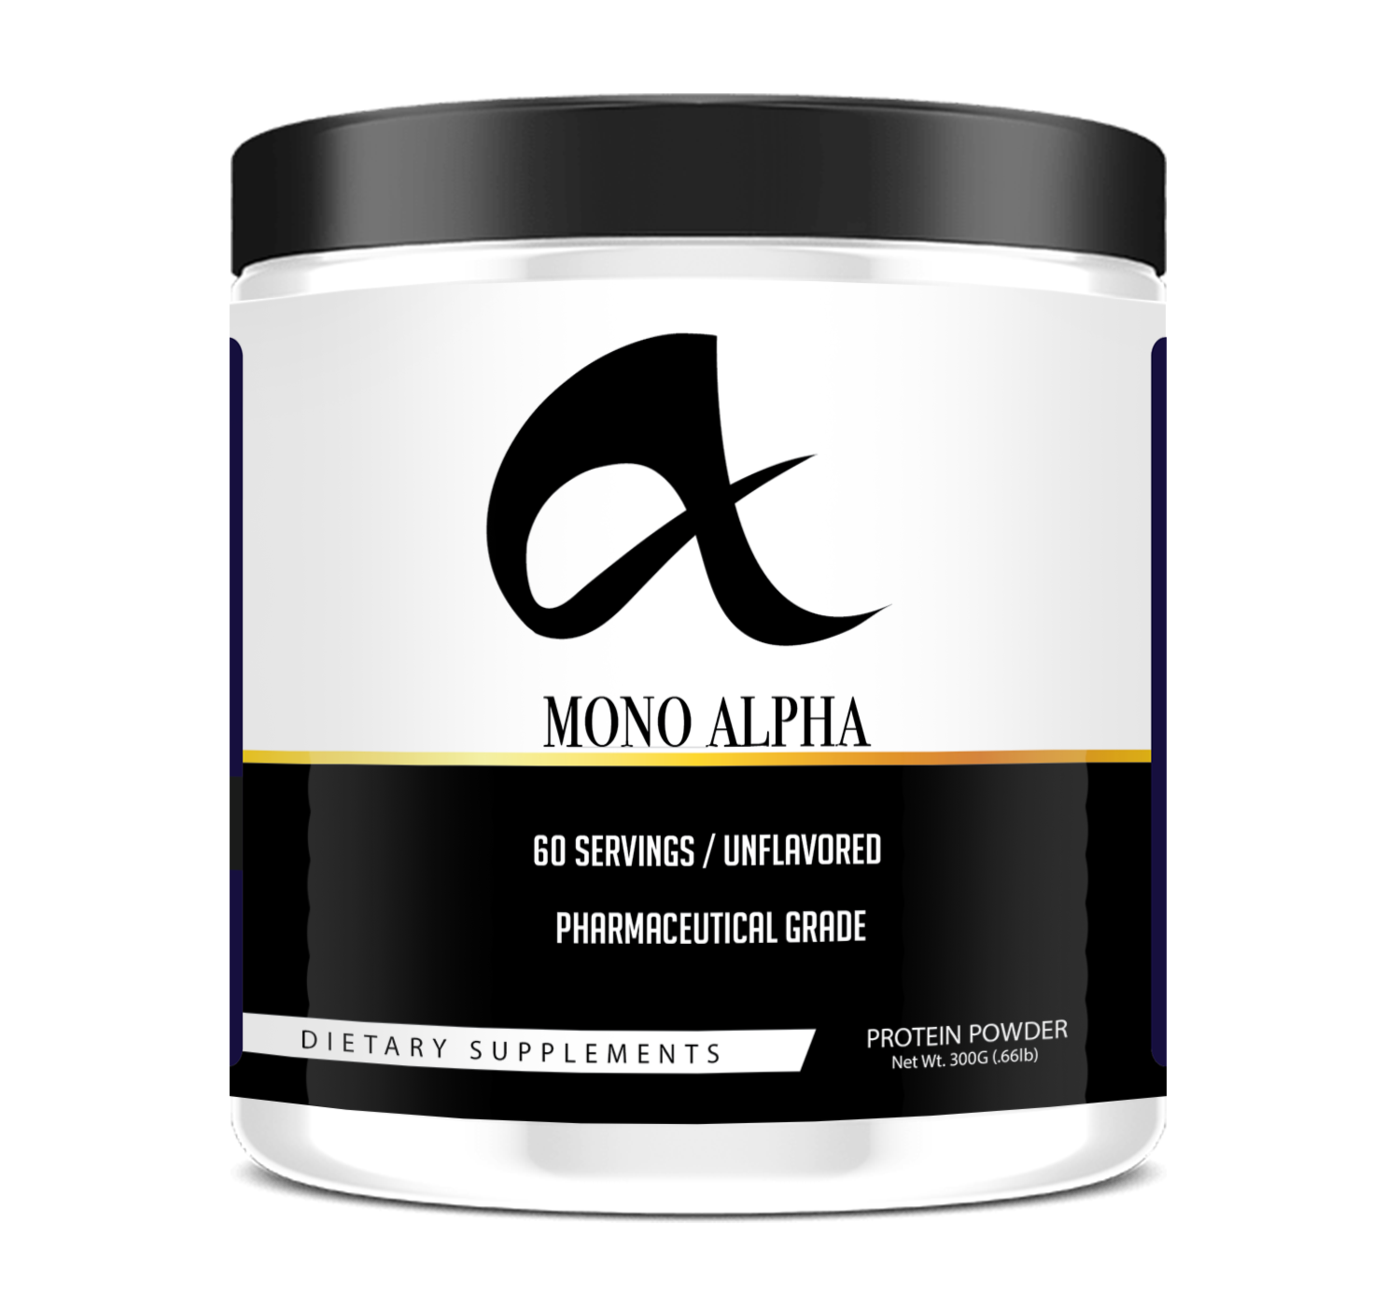 What is Mono Creatine and what does it do?